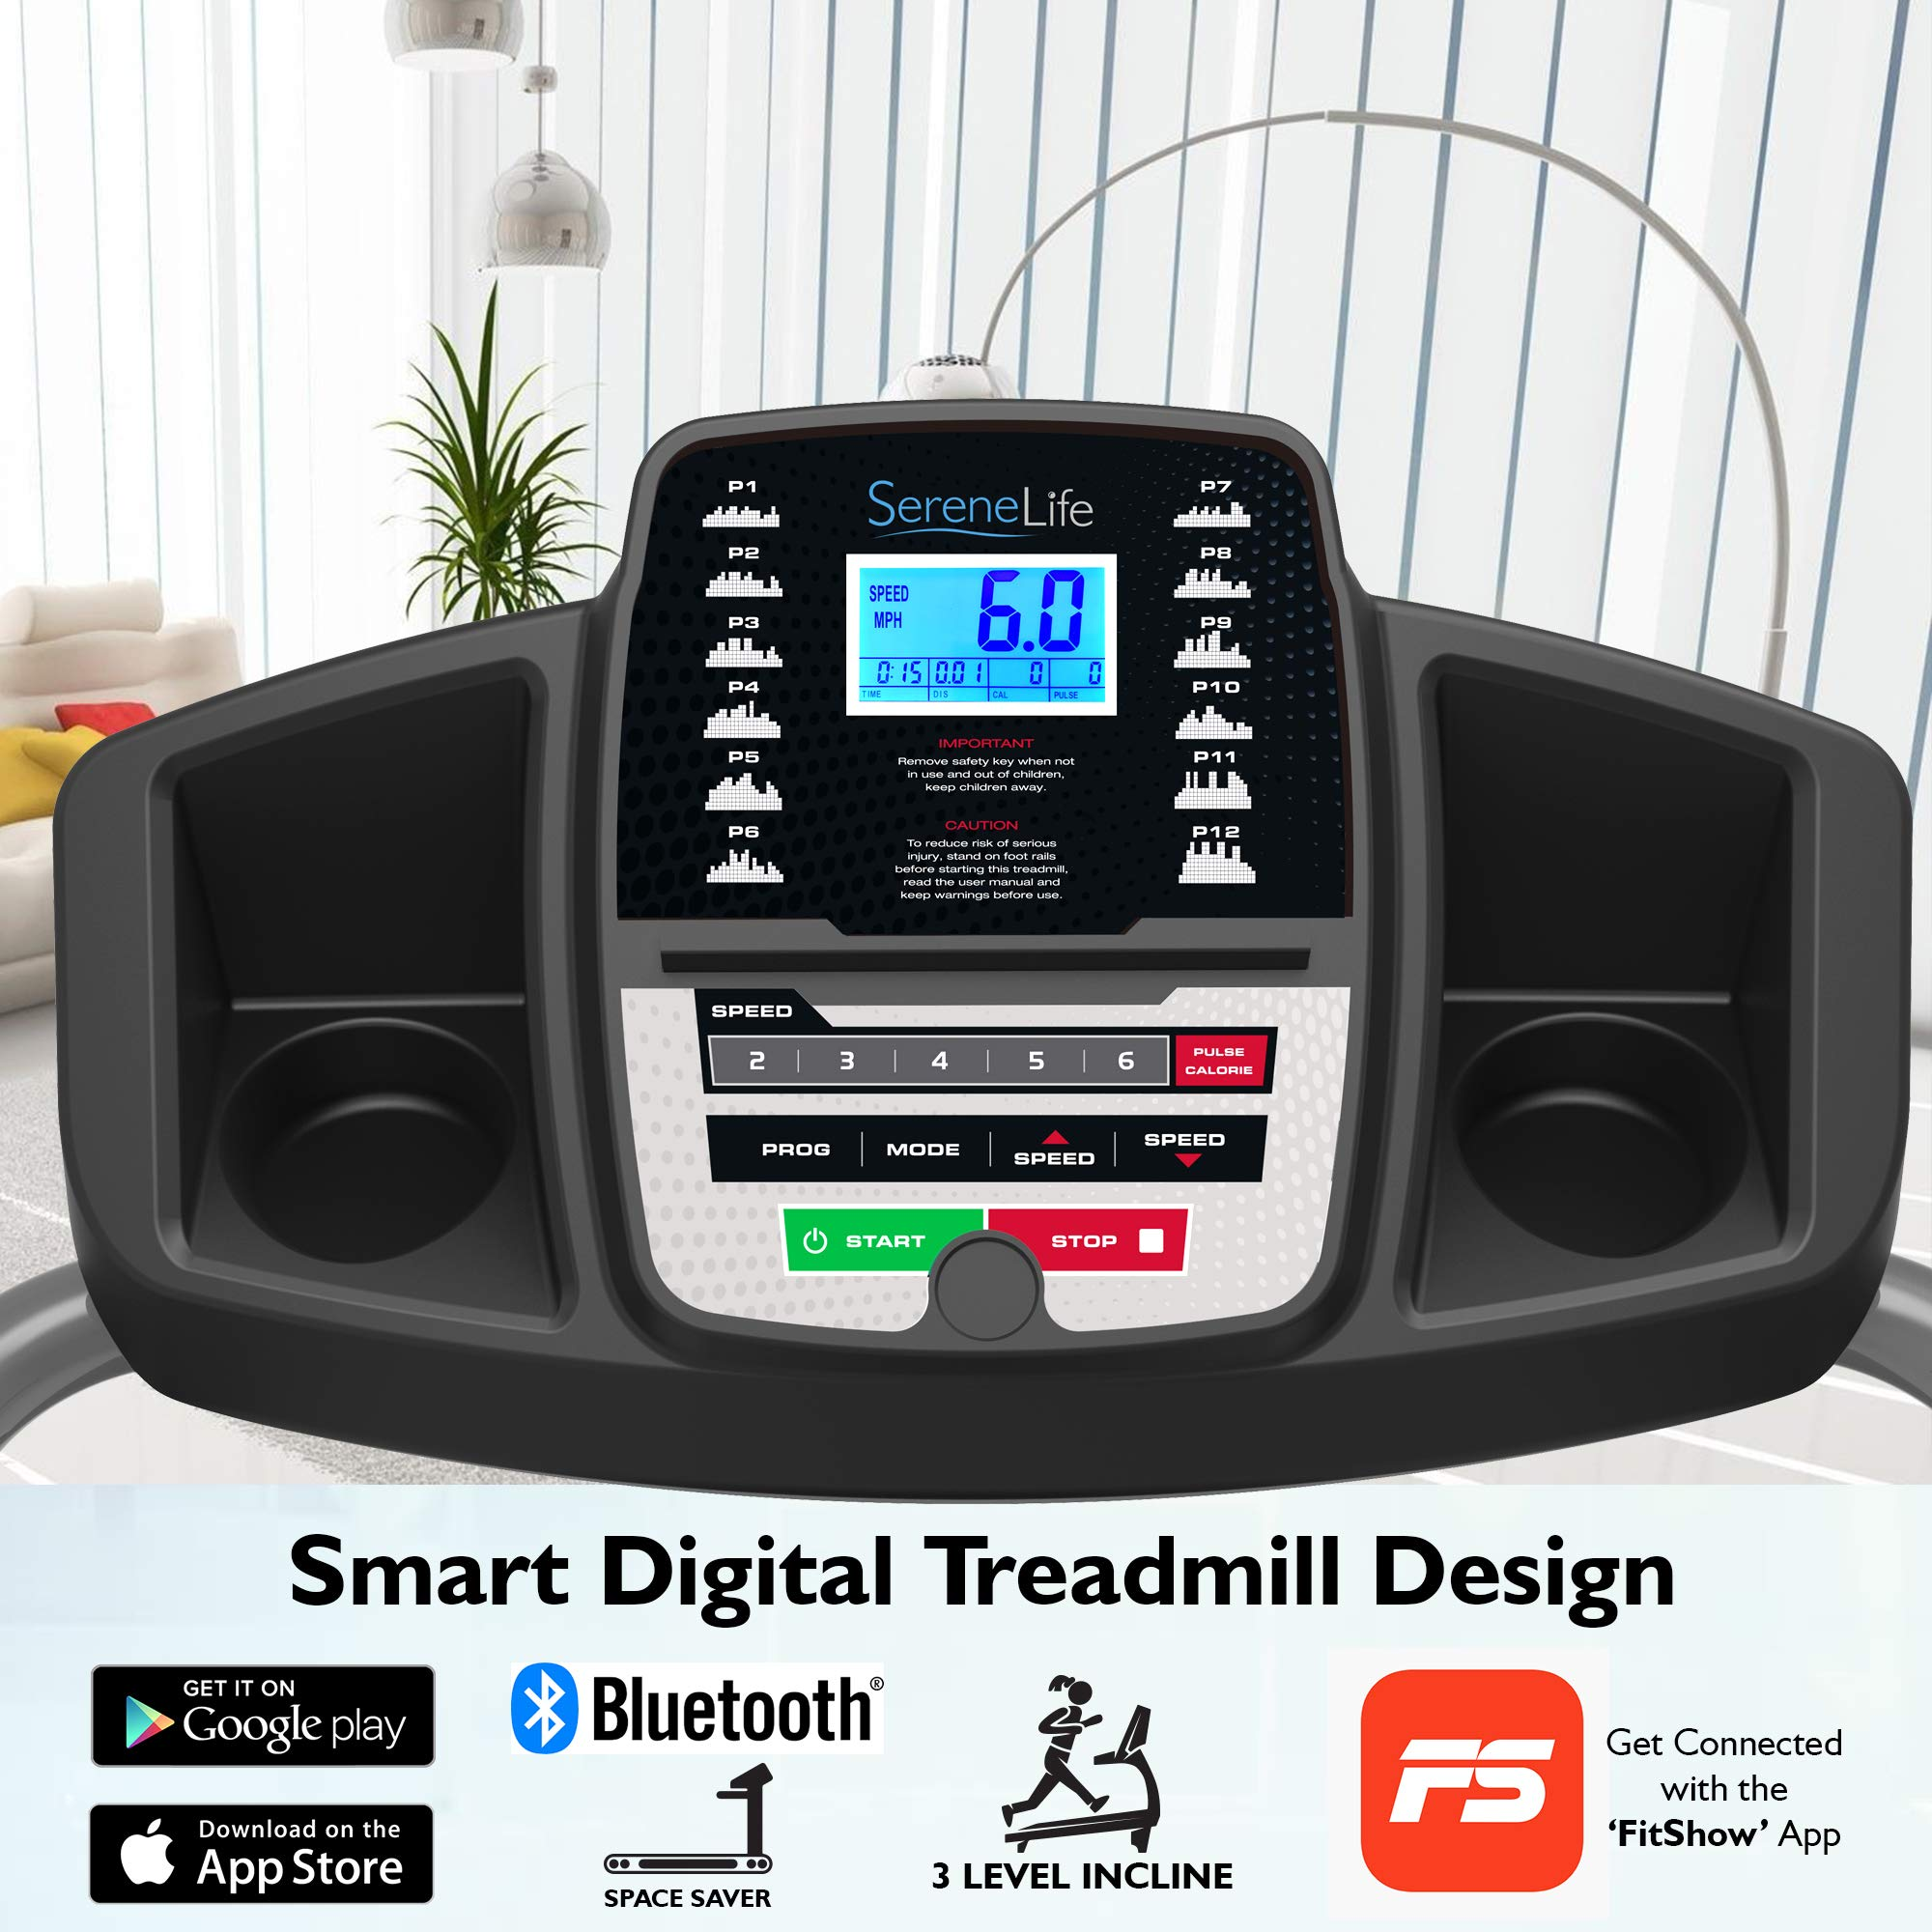 SereneLife Electric Folding Treadmill Exercise Machine - Smart Compact Digital Fitness Treadmill Workout Trainer w/Bluetooth App Sync, Manual Incline Adjustment, for Walking, Running, Gym SLFTRD20 by SereneLife (Image #4)